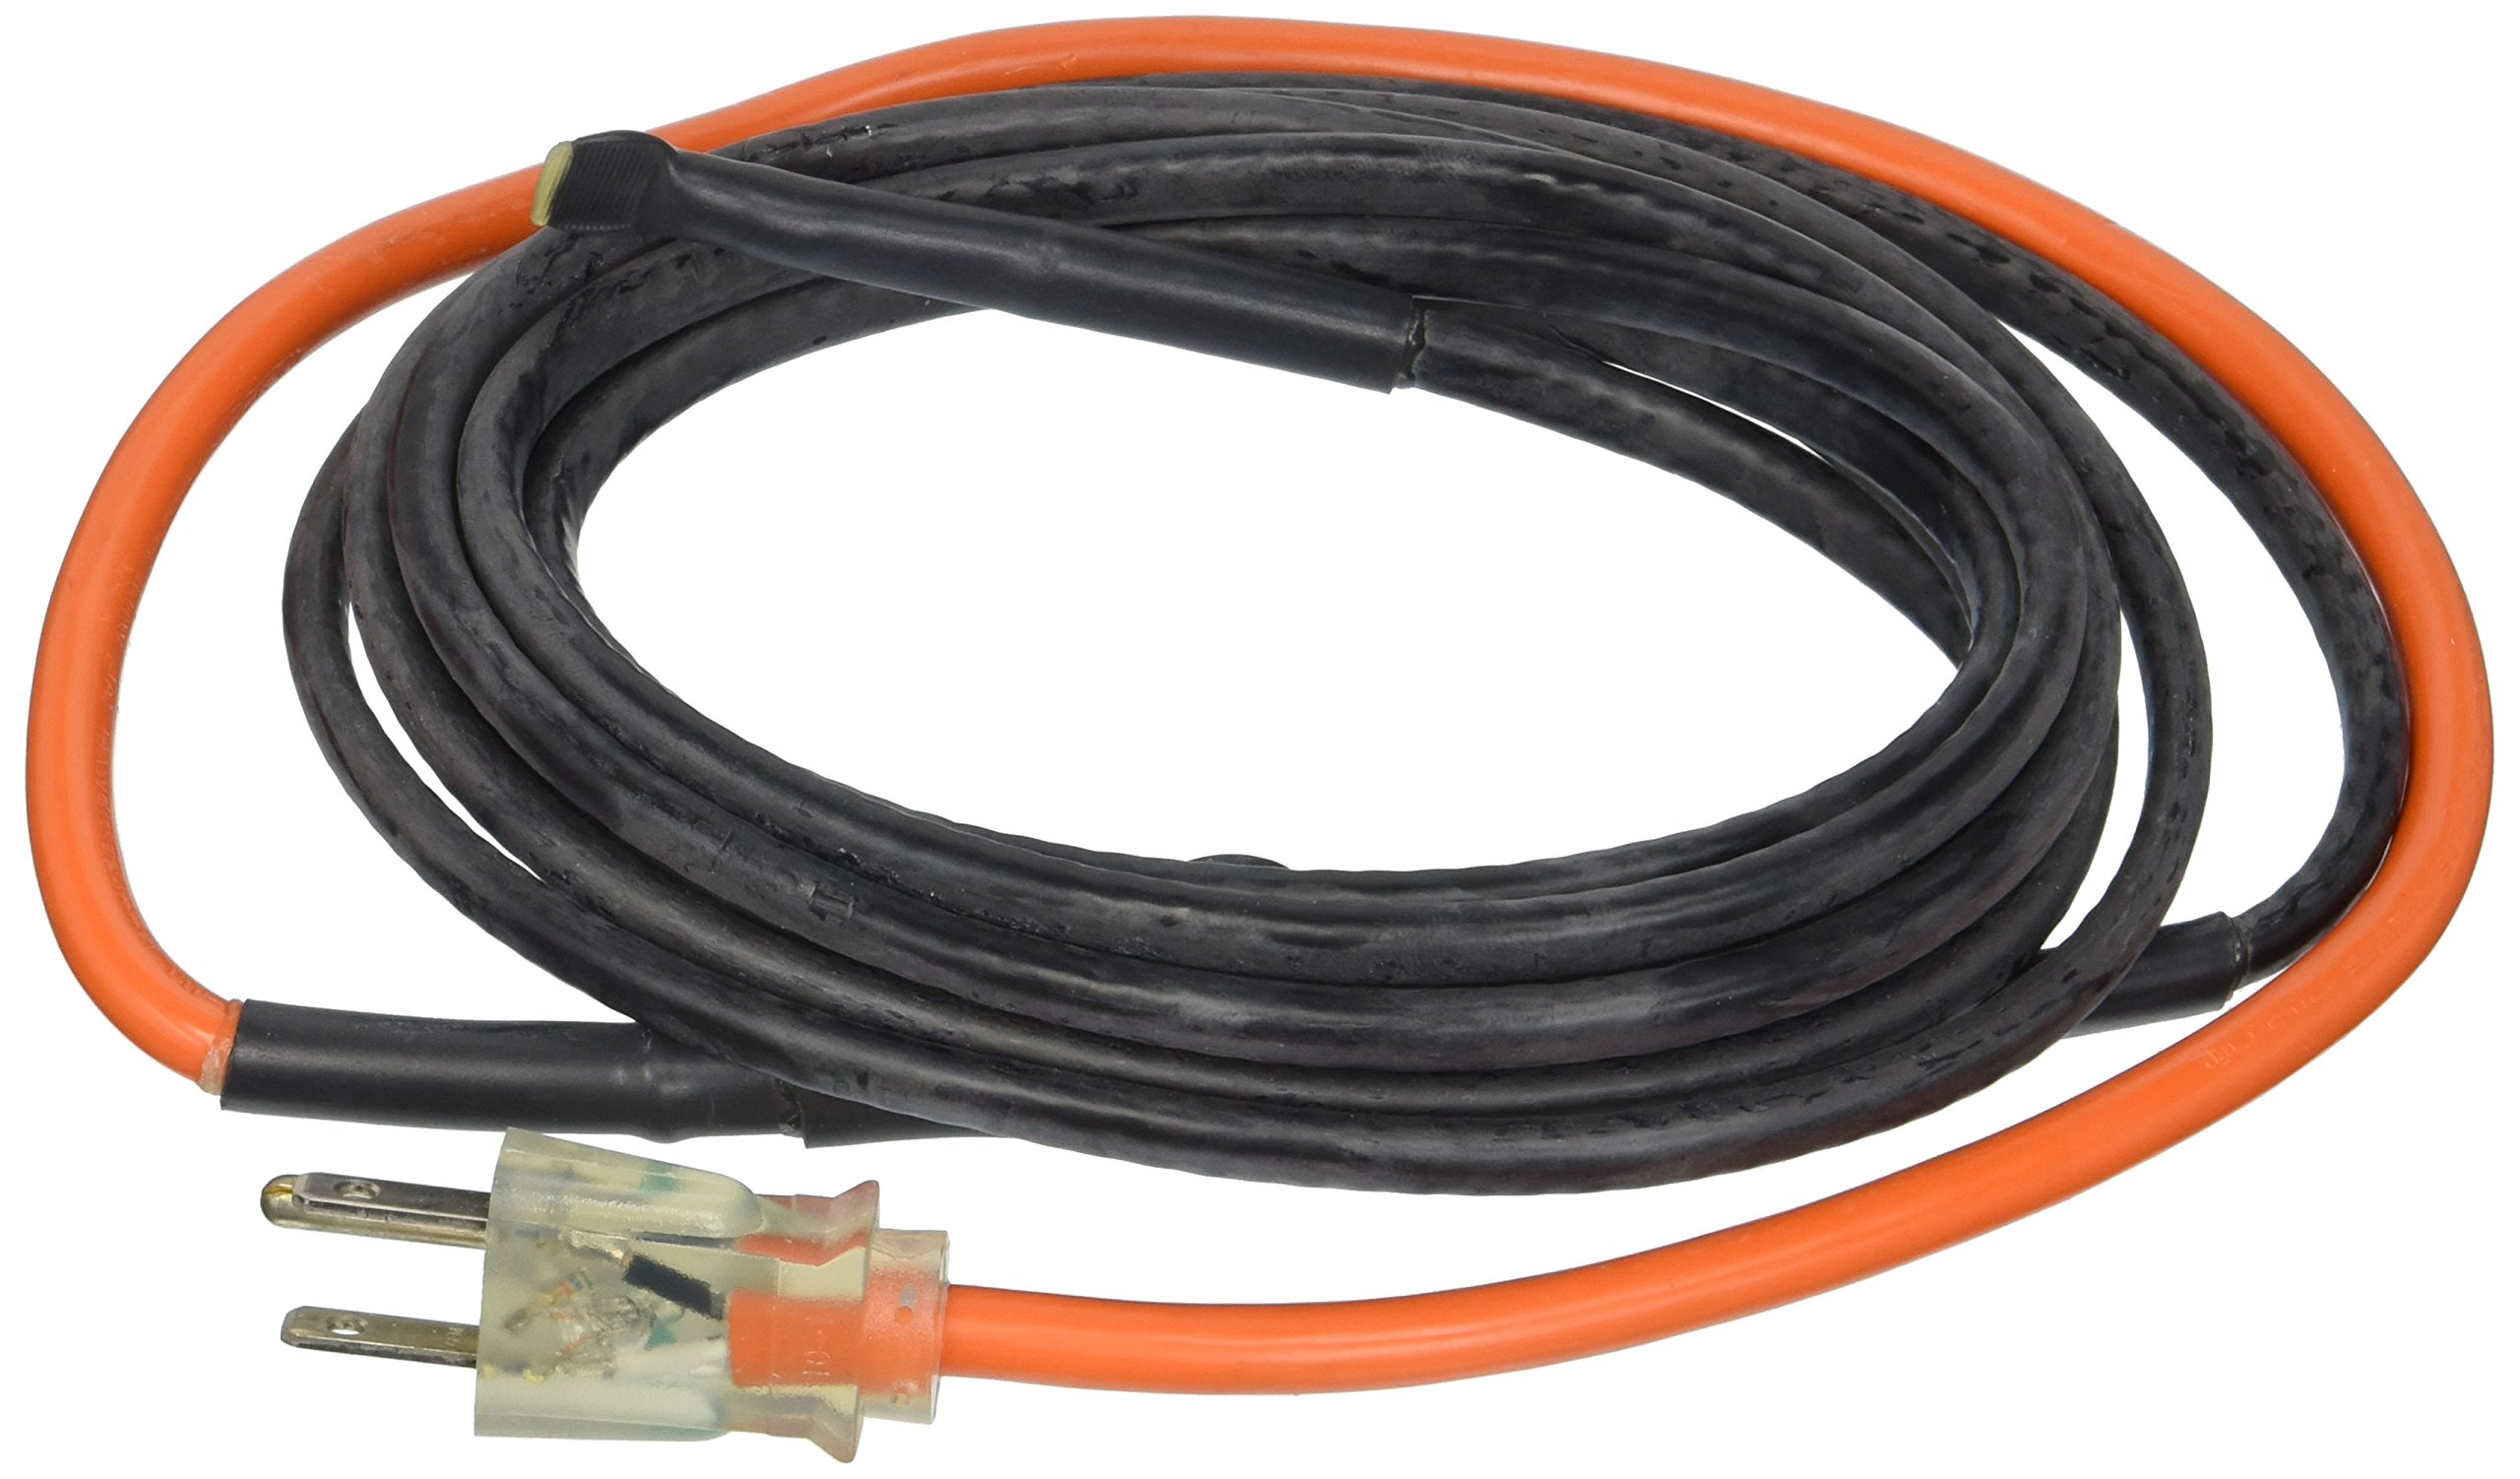 M-D Building Products 4341 12-Foot Pipe Heating Cable with Thermostat by M-D Building Products